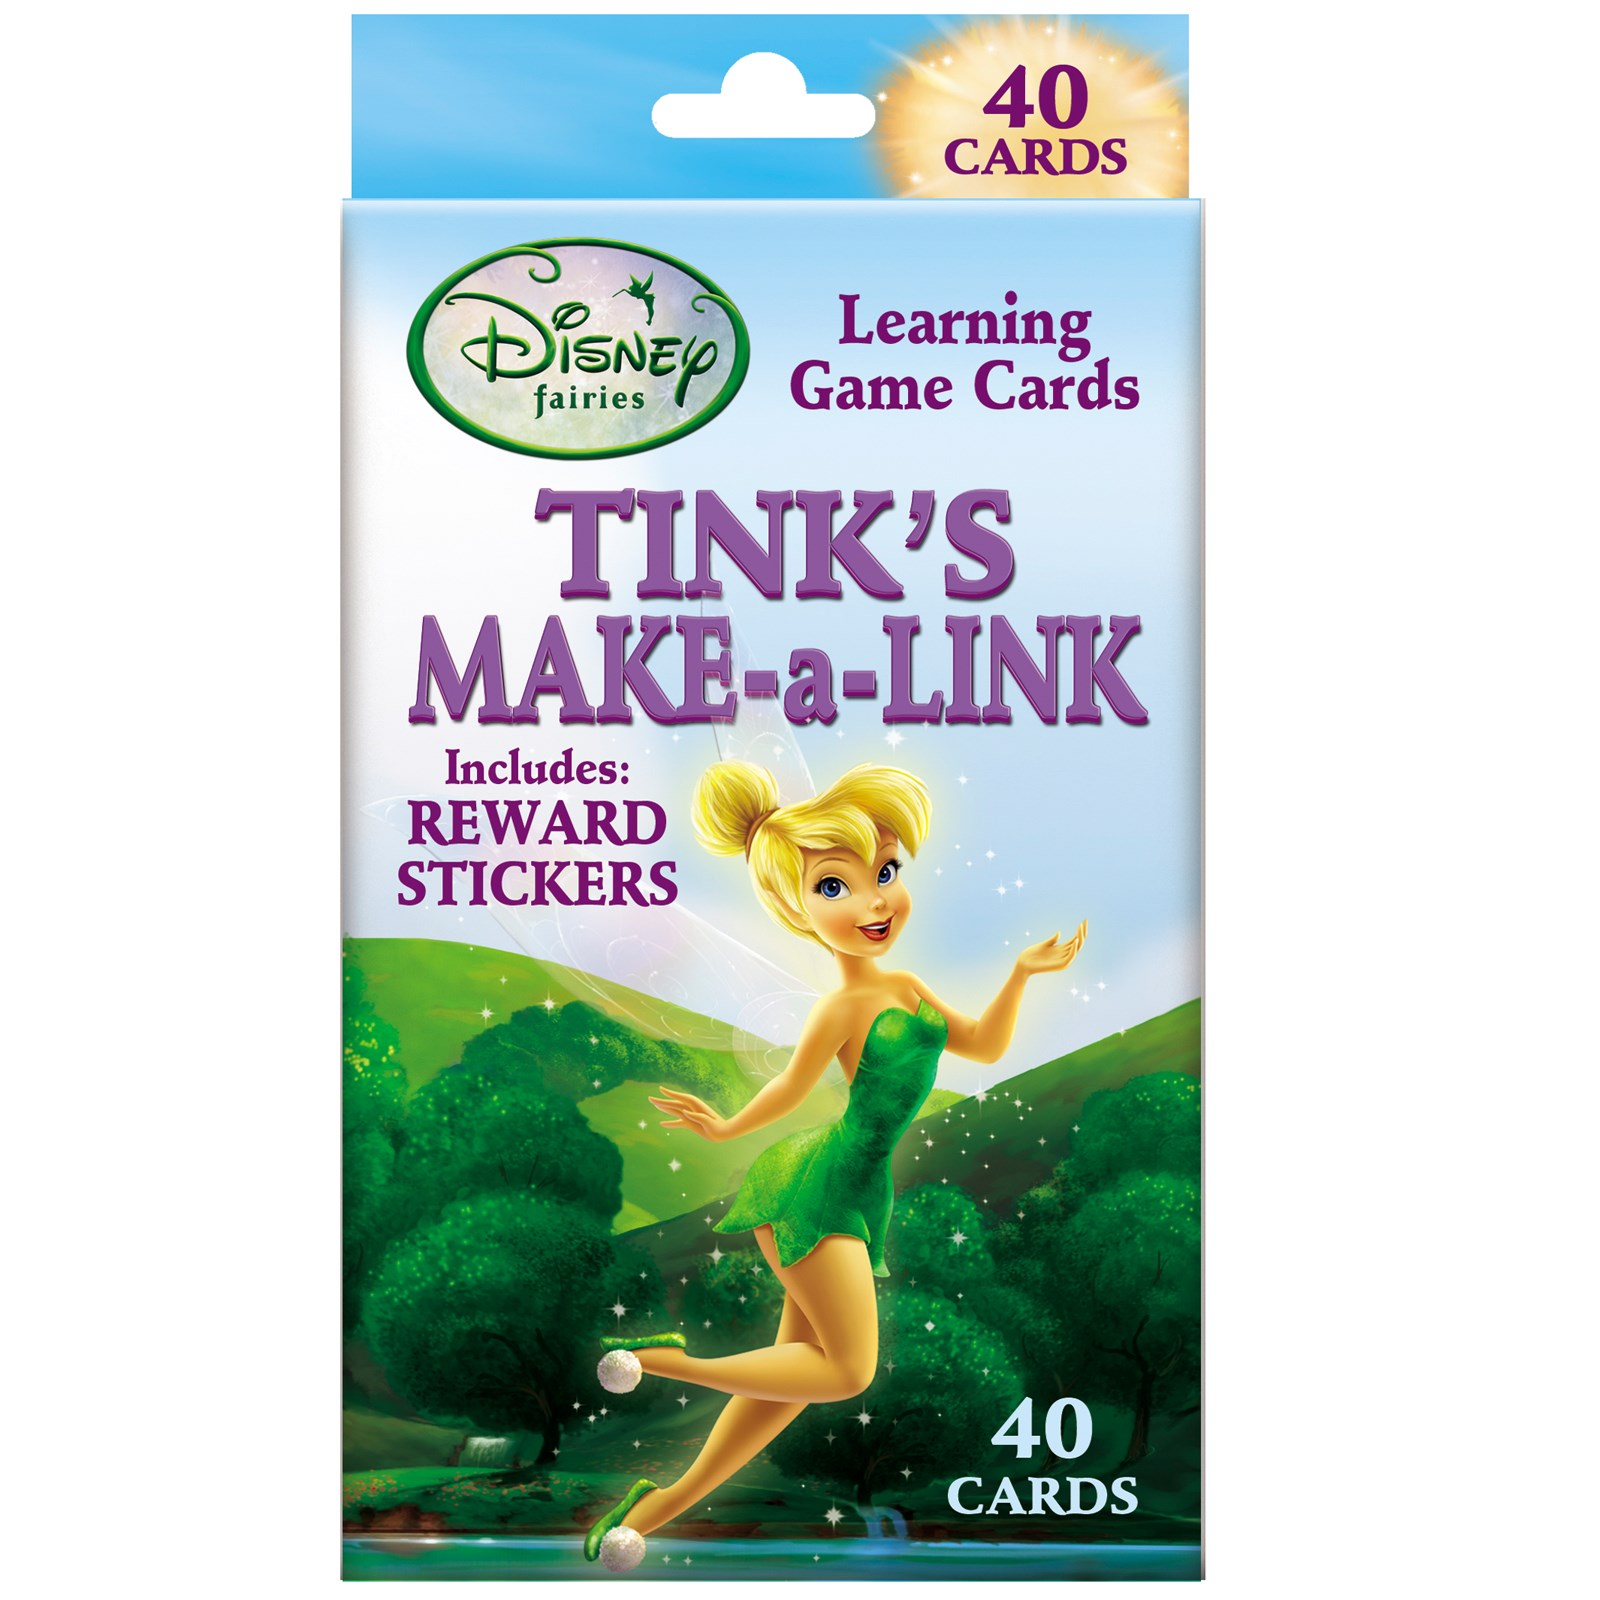 Image of Disney Tinker Bell Make-A-Link Learning Game Cards